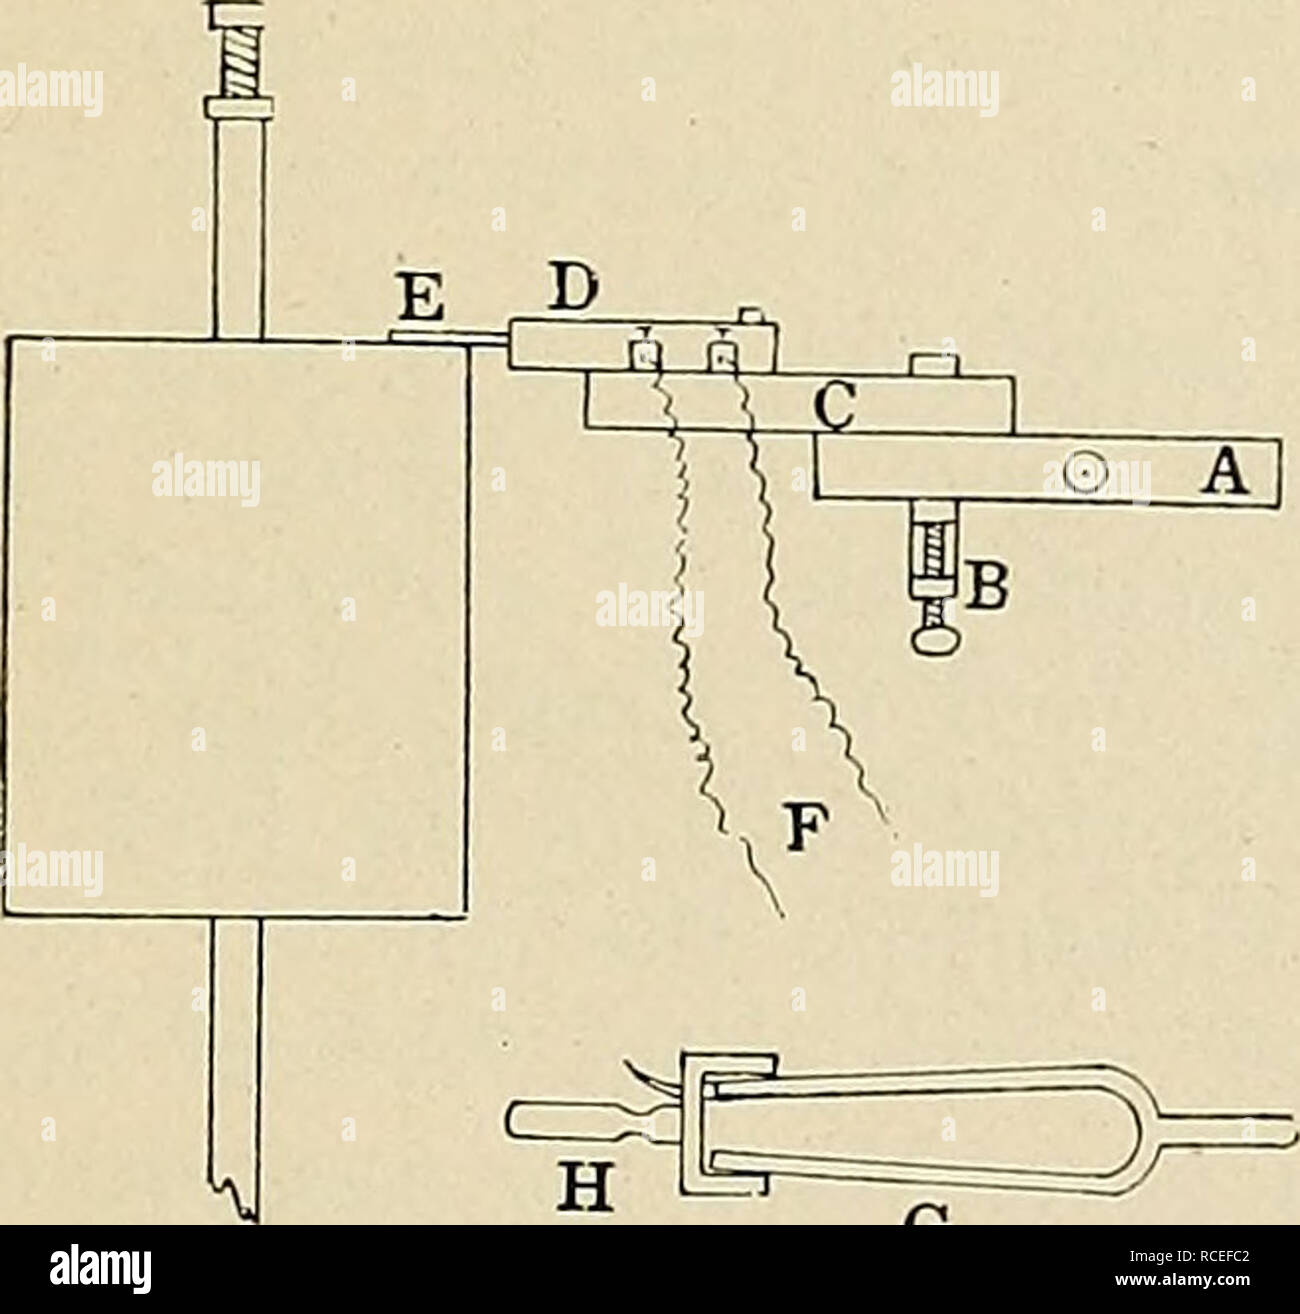 Directions For Laboratory Work In Physiology For The Use Of